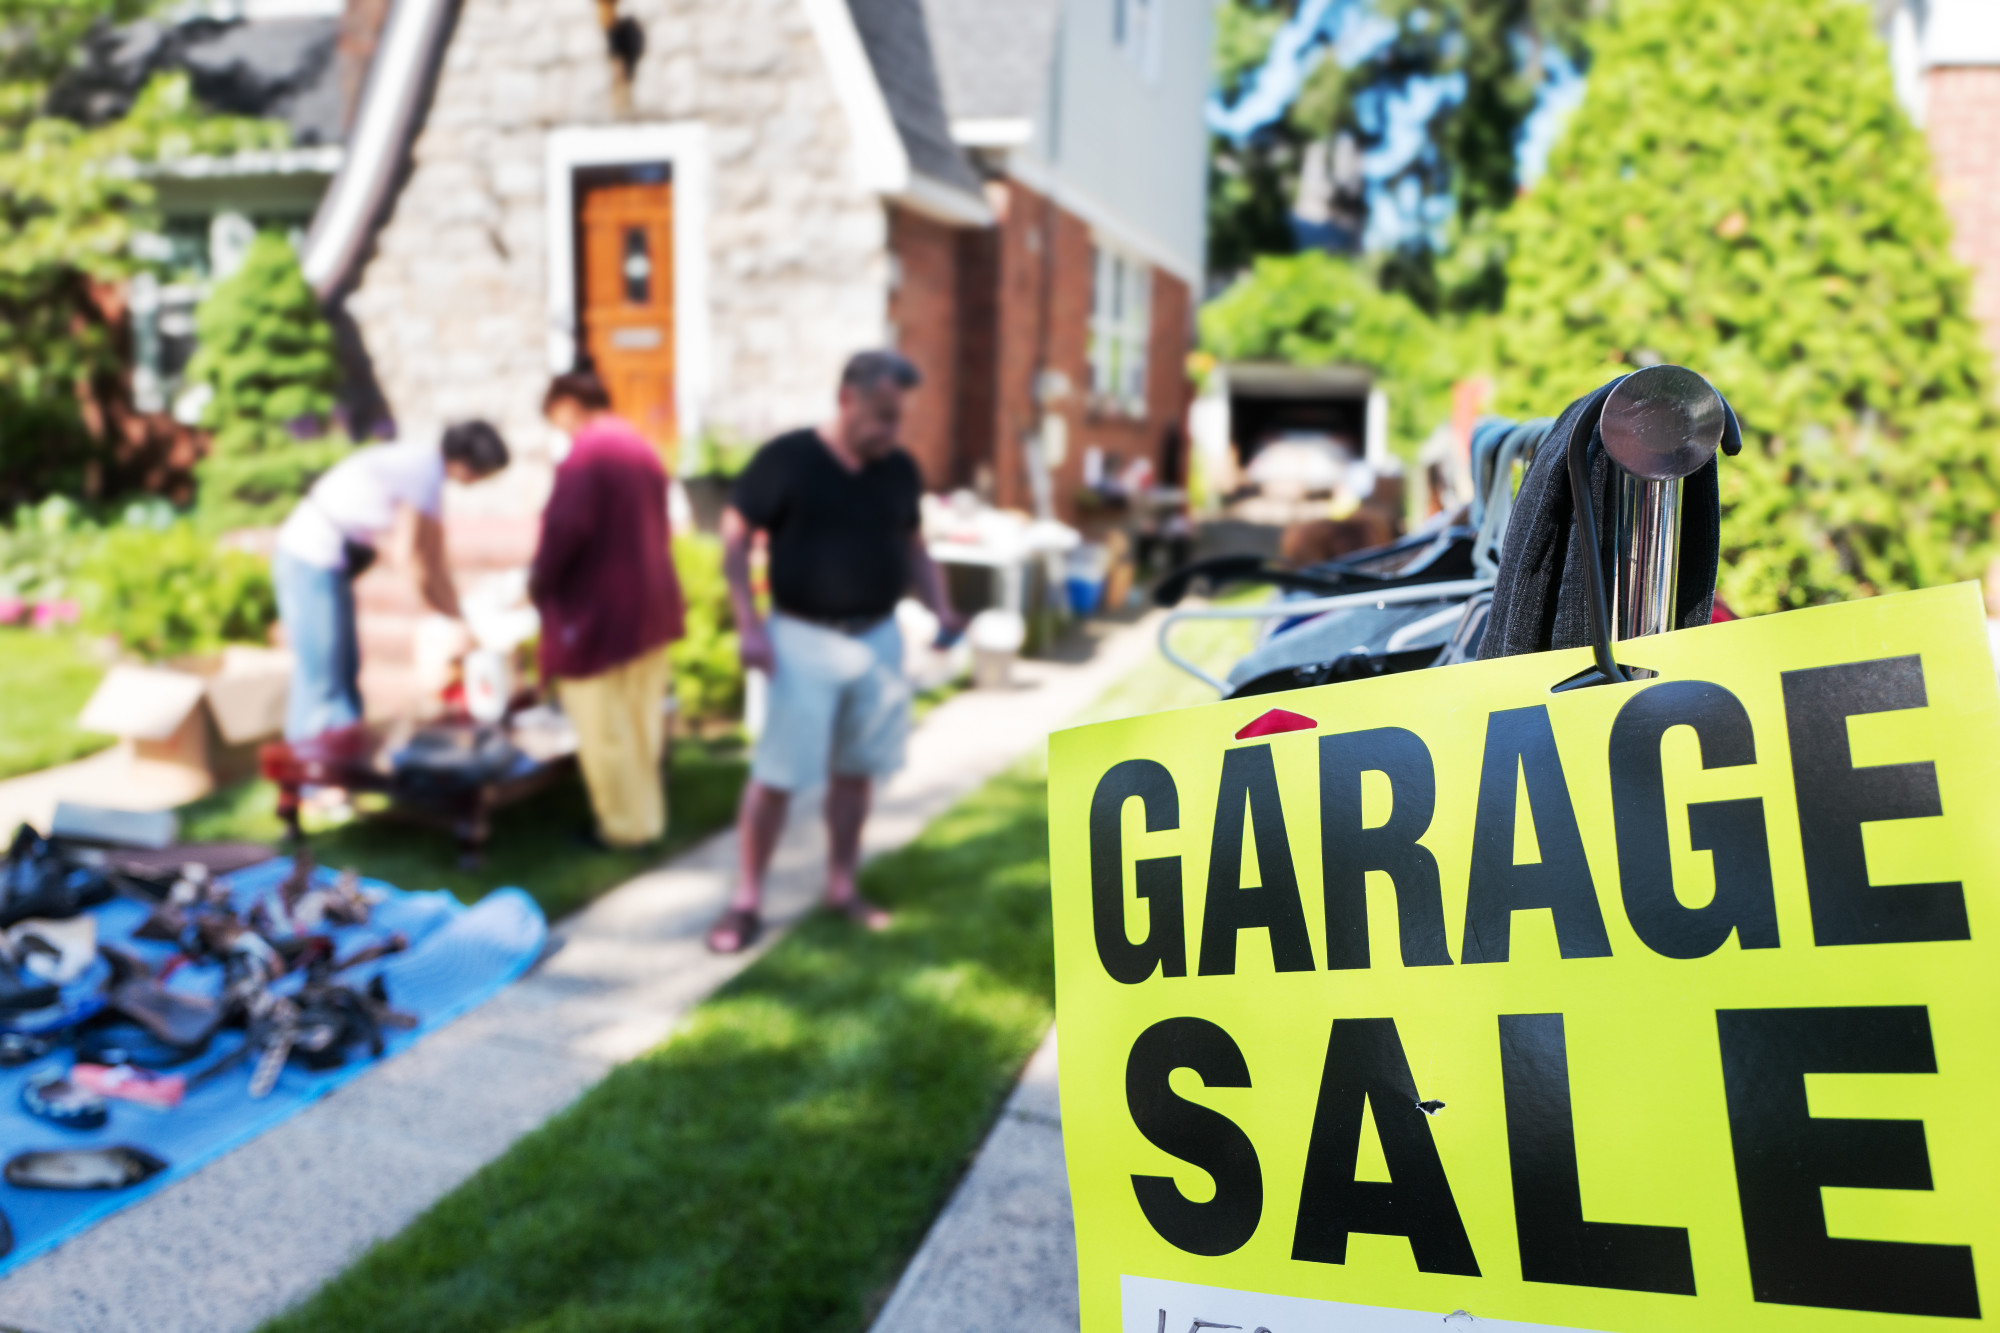 Garage Sale Furniture Selling: 5 Tips that Will Help You Get it Gone